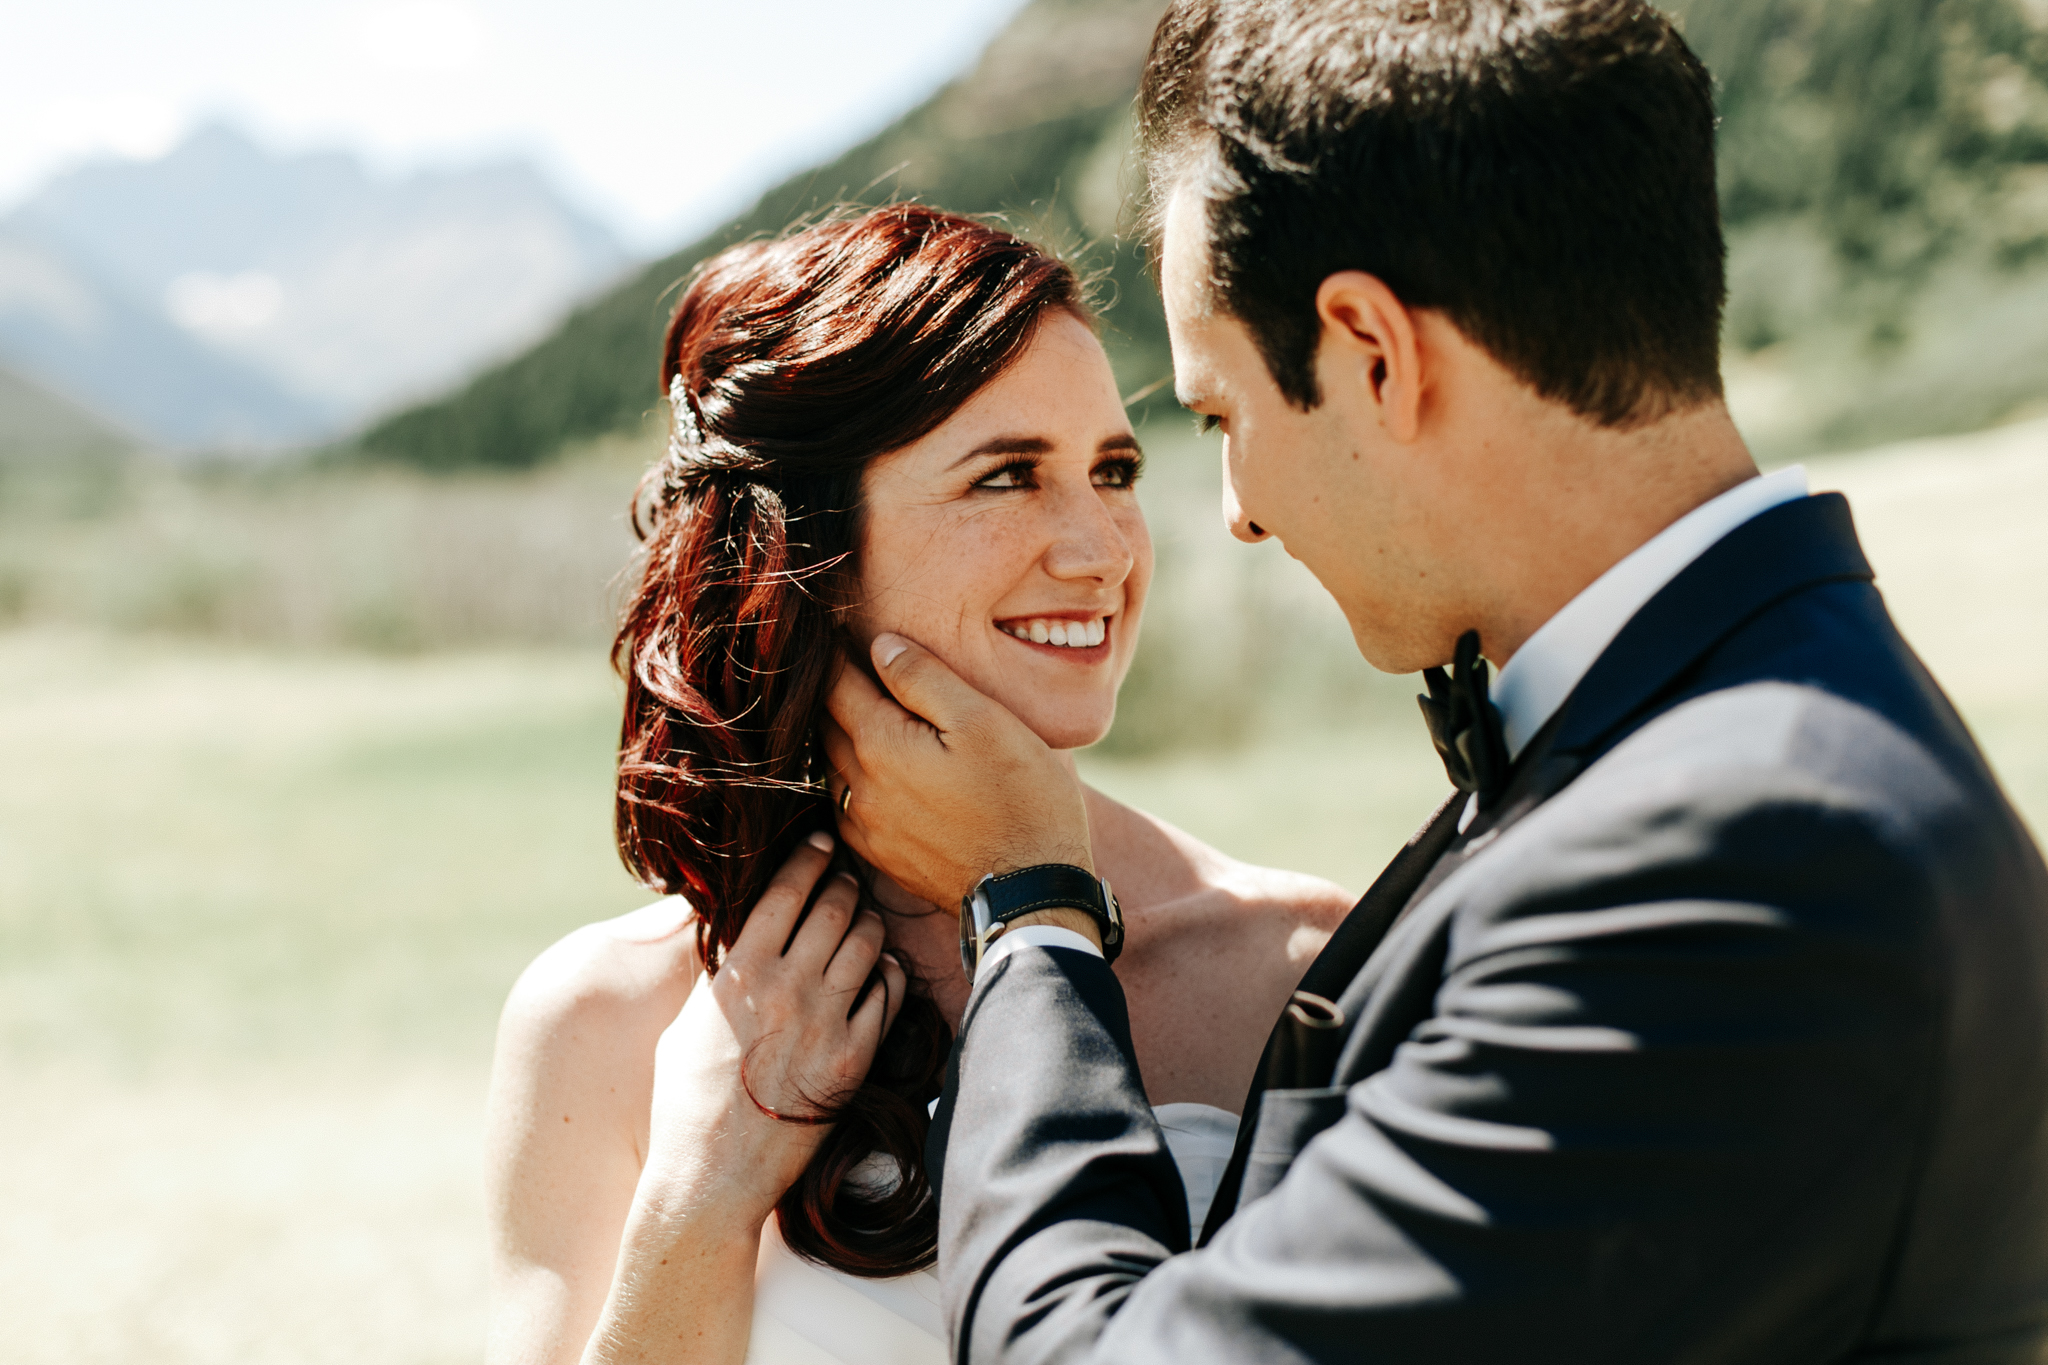 waterton-wedding-photographer-love-and-be-loved-photography-lethbridge-calgary-adam-jodie-image-picture-photo-70.jpg